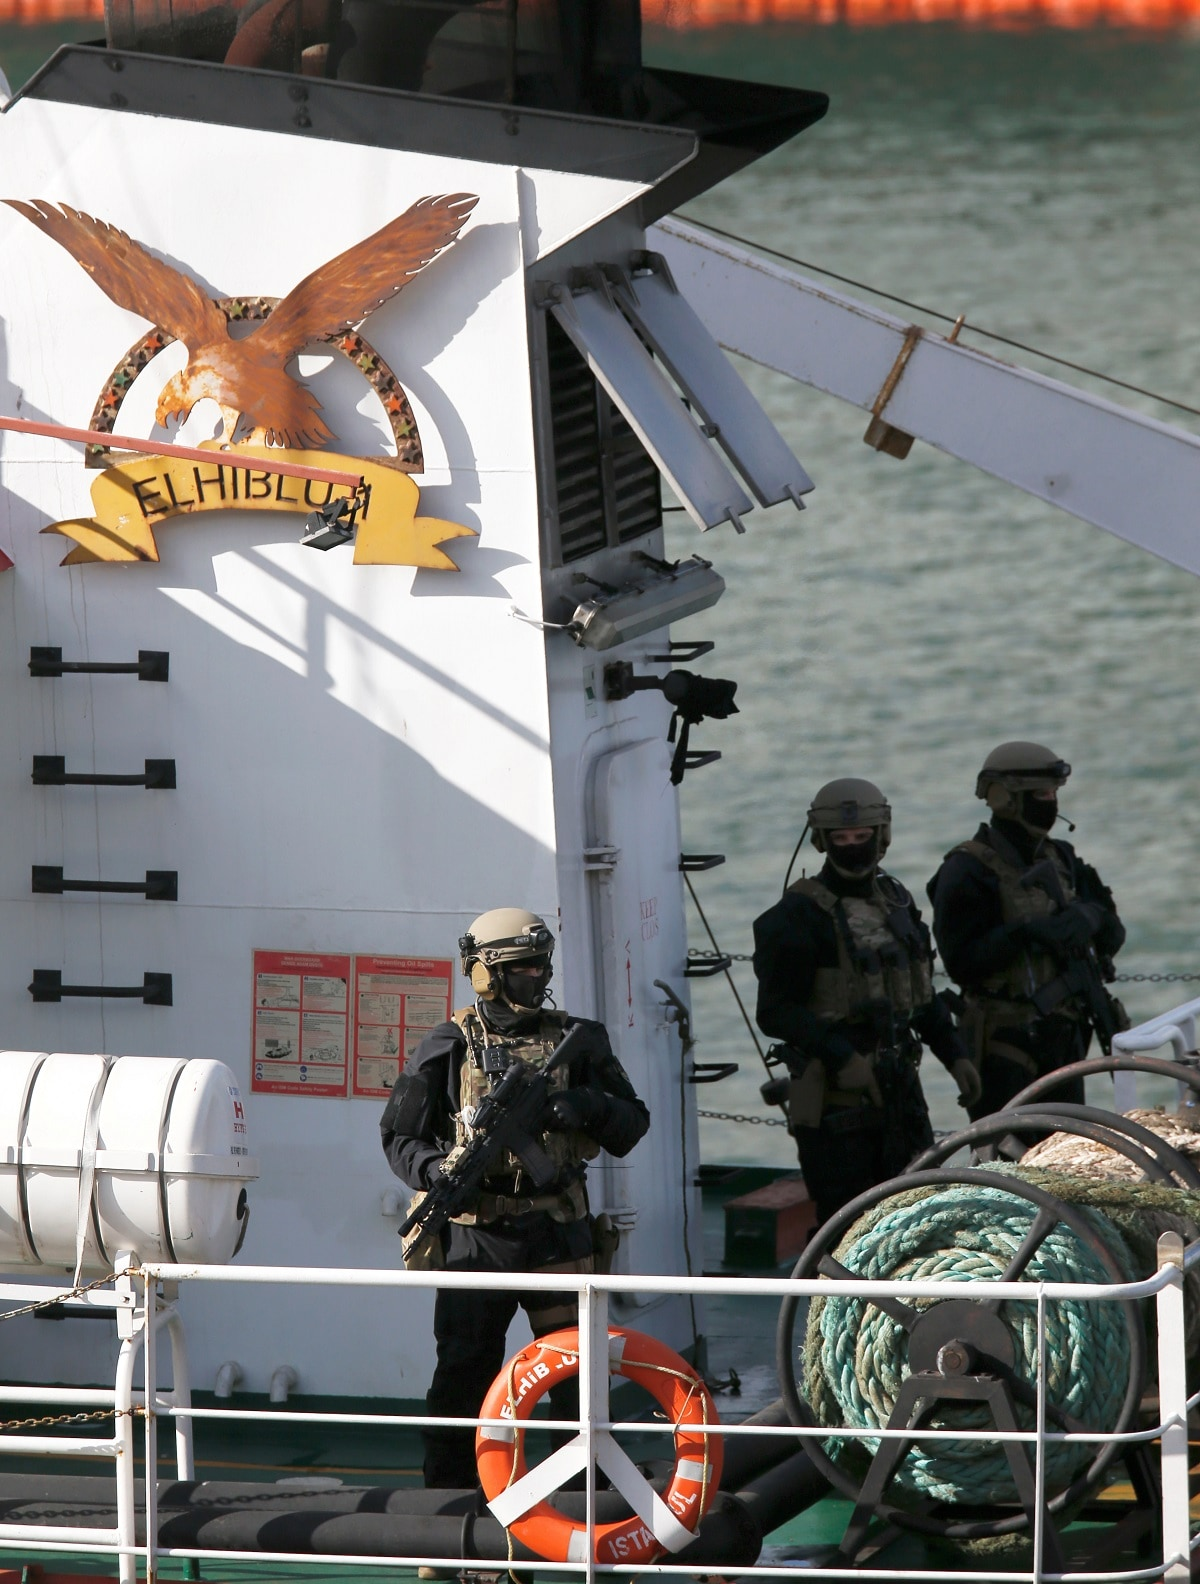 Maltese special forces soldiers are seen on the merchant ship Elhiblu 1 after it arrived in Senglea in Valletta's Grand Harbour. (REUTERS/Darrin Zammit Lupi)